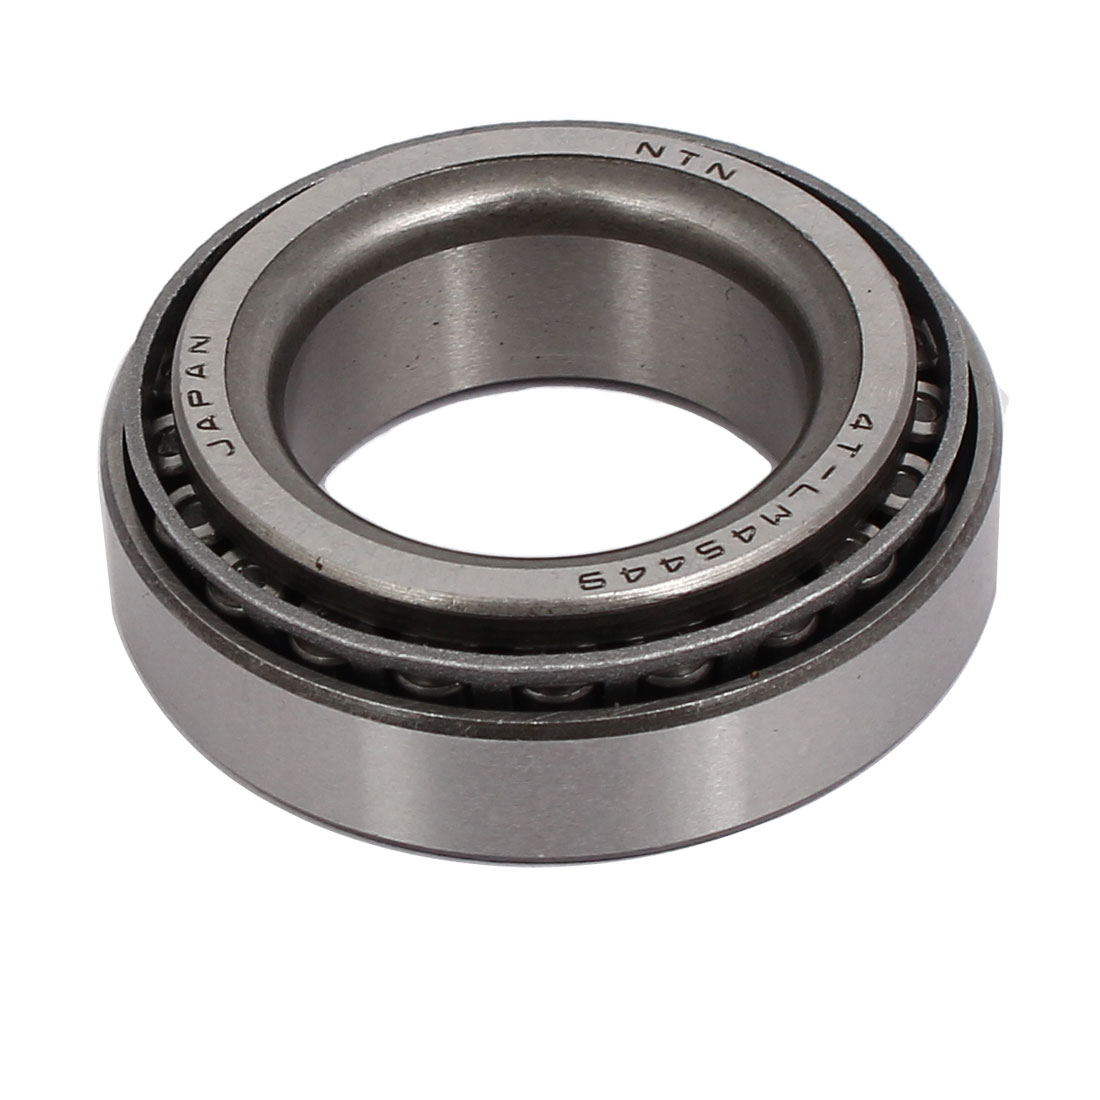 LM45449/10 50mmx28mmx15mm Single Row Tapered Roller Bearing Silver Tone